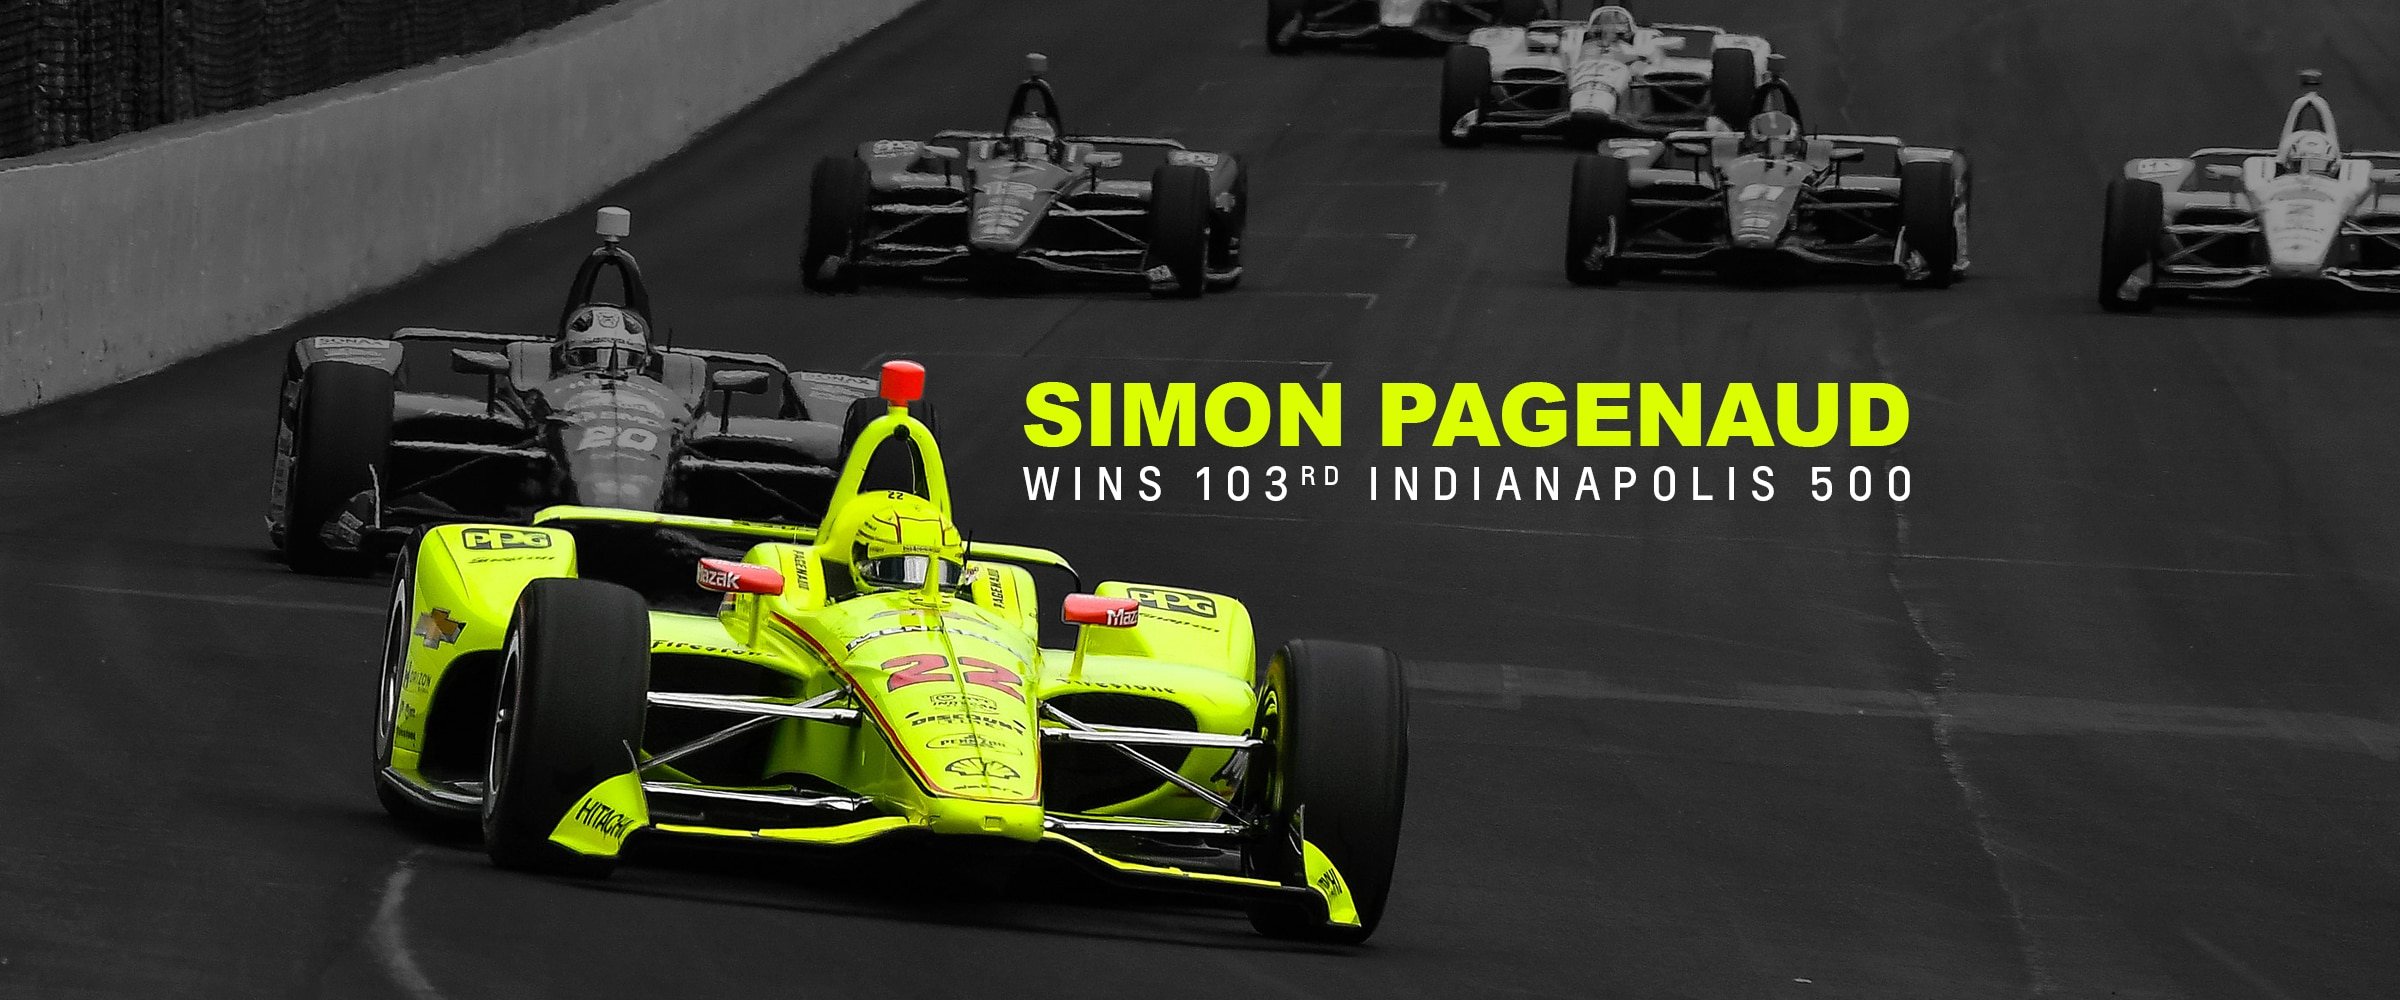 Racing, Motorsports, Chevy, Chevrolet, Chevrolet Performance, IndyCar, Indy 500, Indianapolis 500, Indianapolis Motor Speedway, Greatest Spectacle in Racing, Brickyard, Team Chevy, Team Penske, Simon Pagenaud